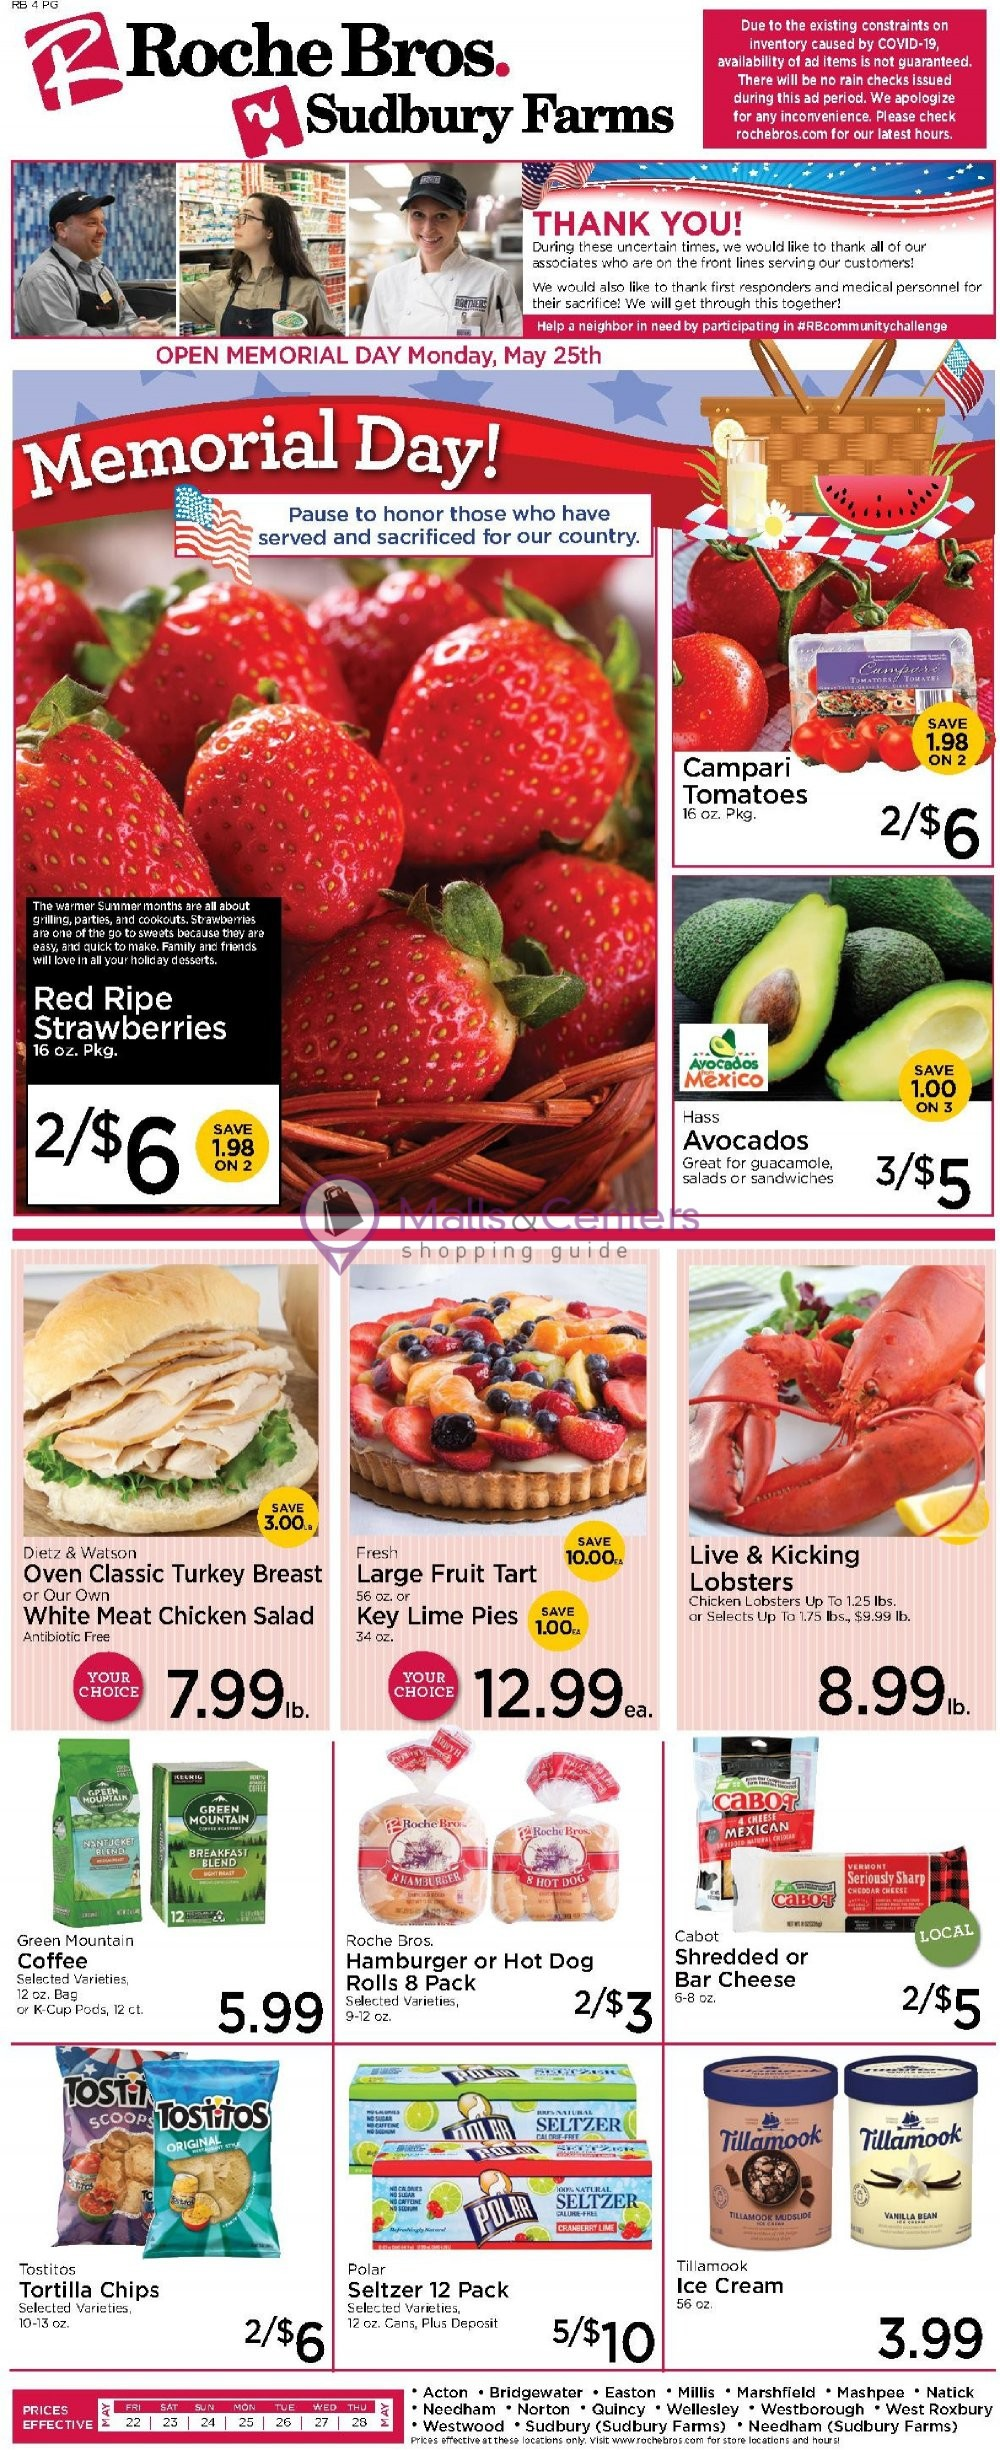 weekly ads Roche Bros. Supermarkets - page 1 - mallscenters.com